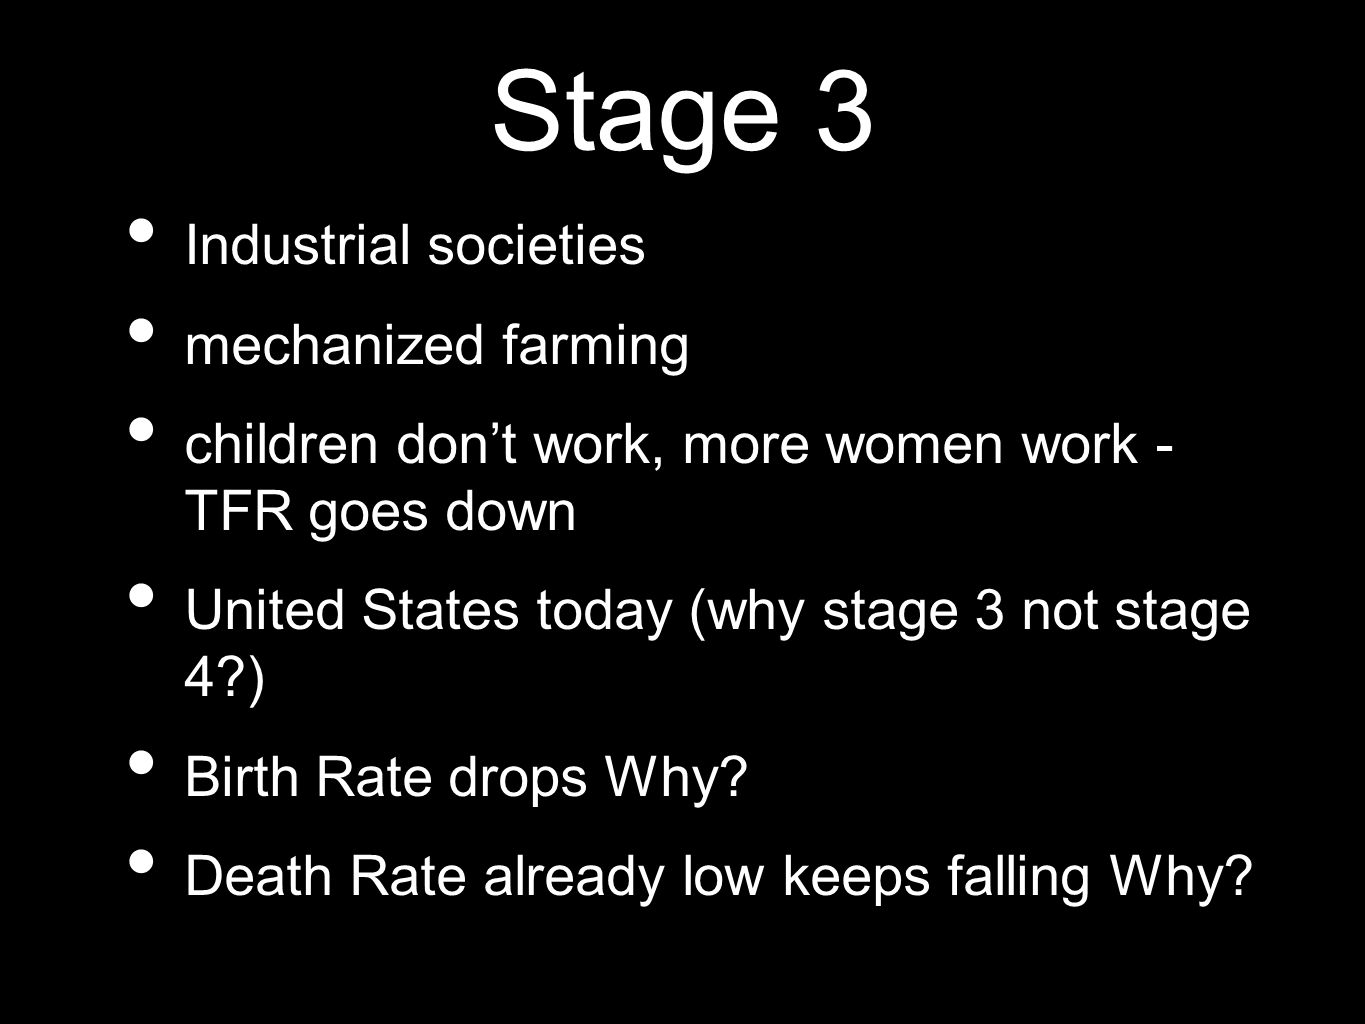 Stage 3 Industrial societies mechanized farming